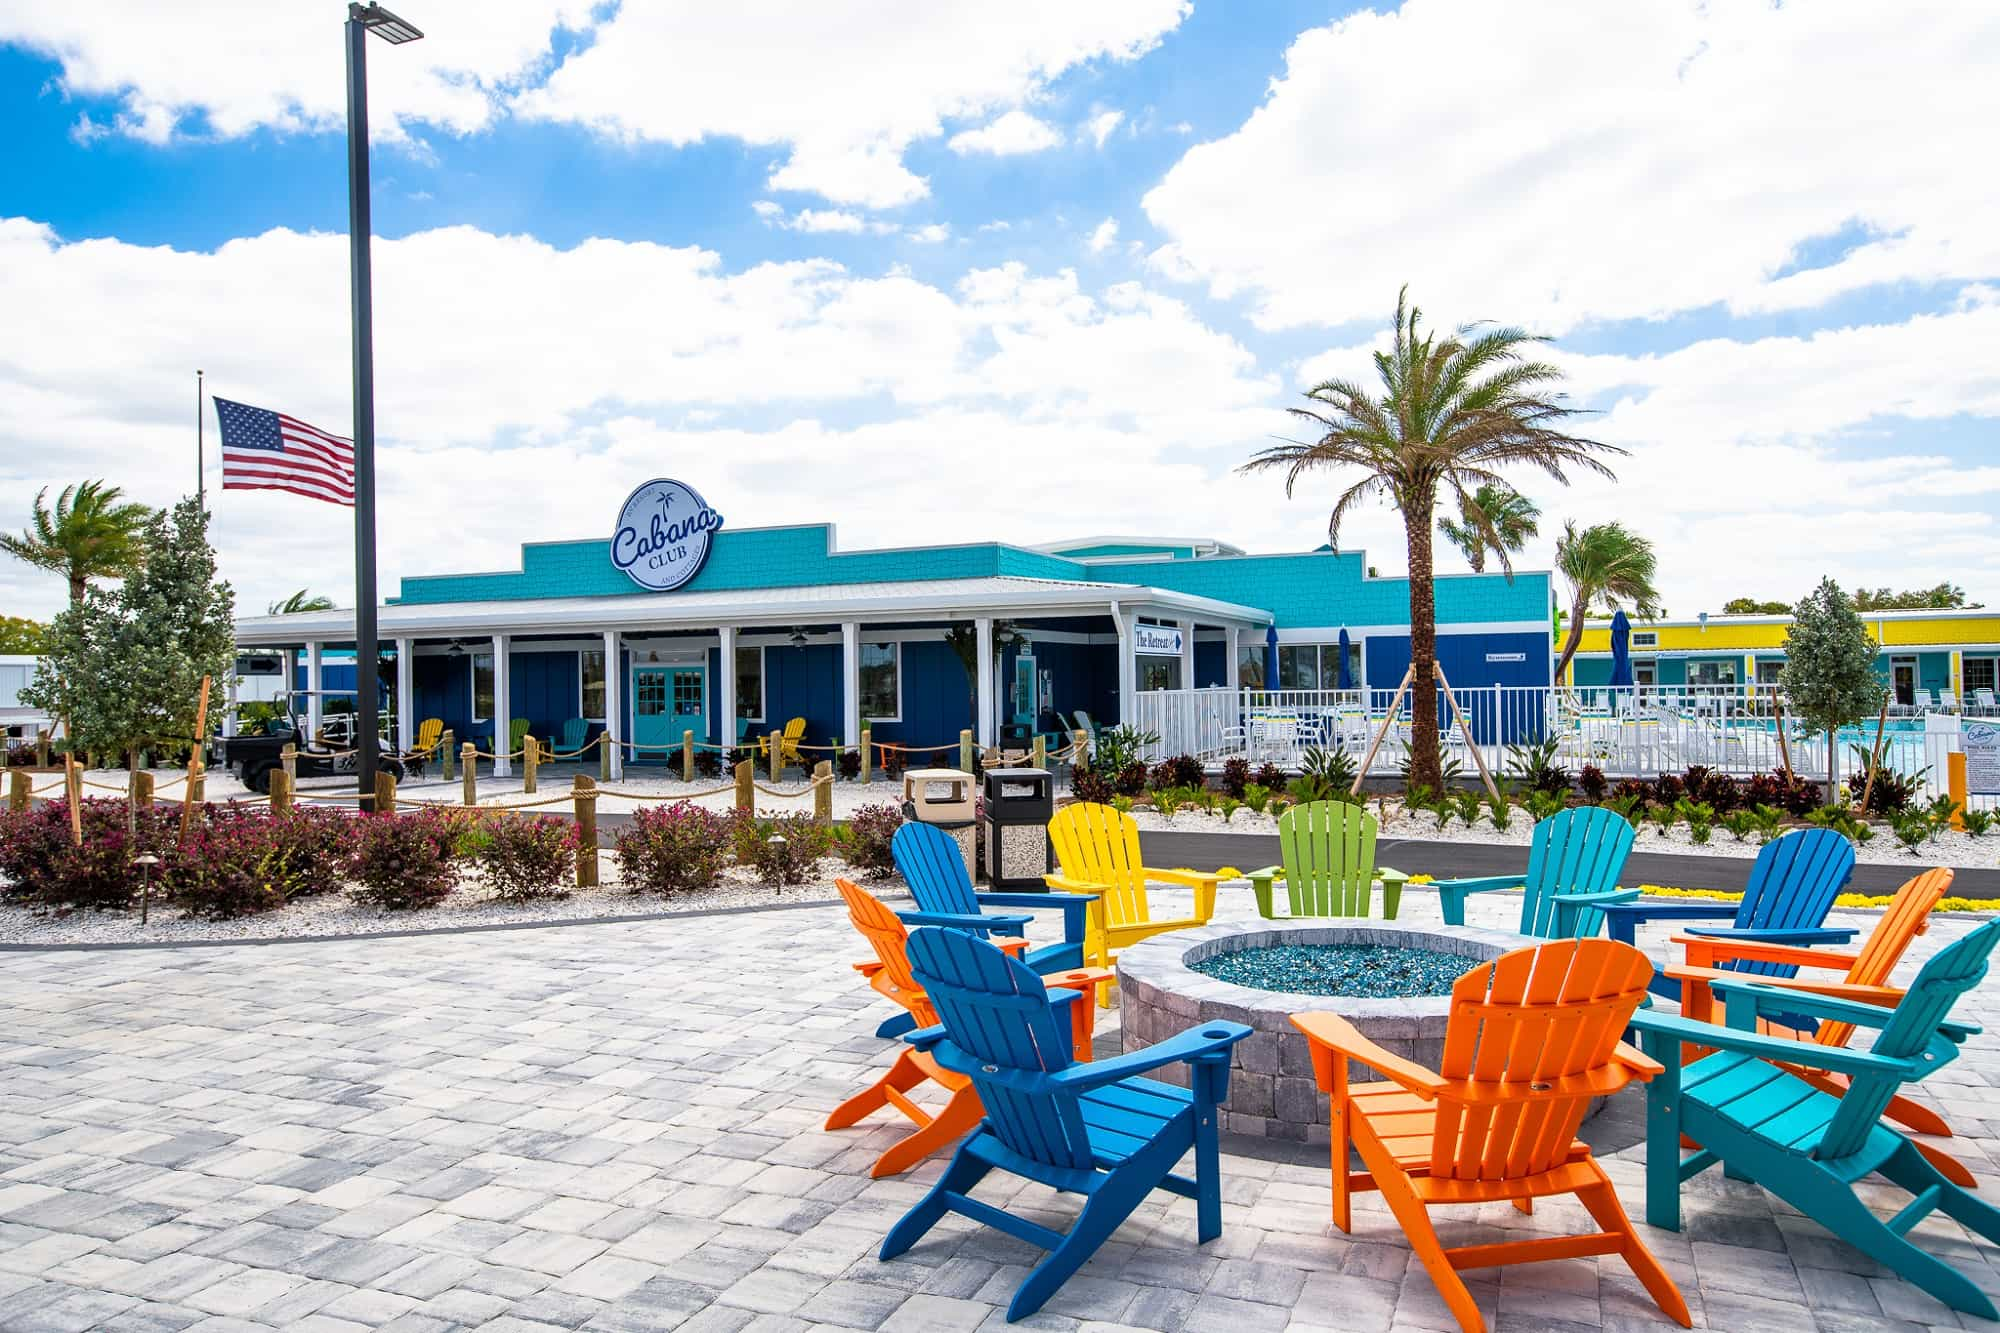 Patio and check-in building at Cabana Club Resort featuring cottages and RV slots.